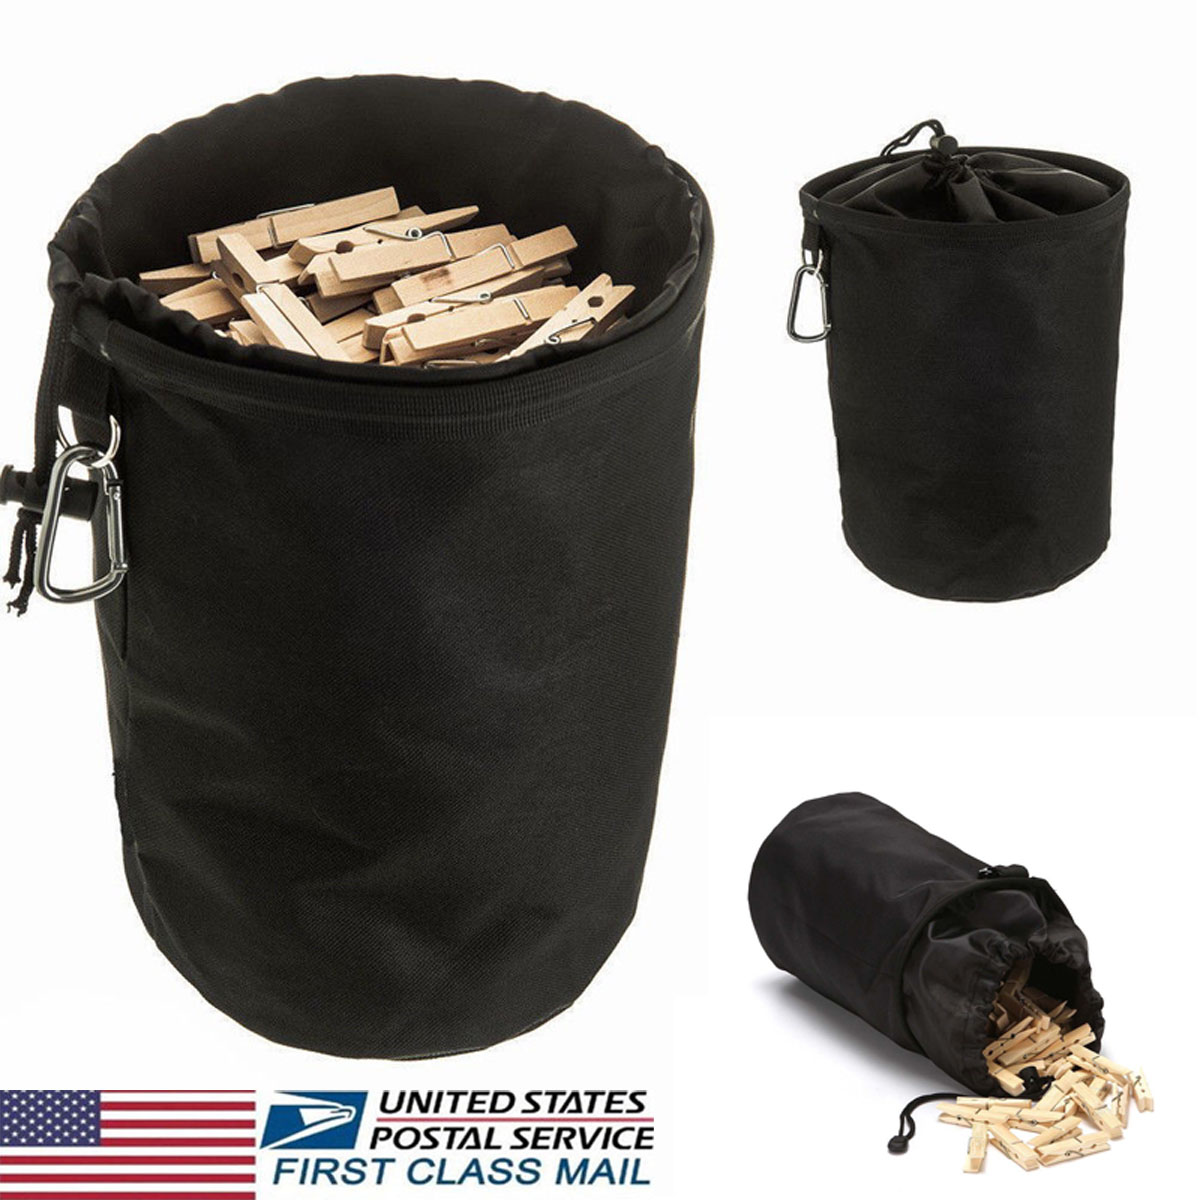 details about us hanging clothespin bag clothes pin drawstring laundry  sturdy storage holders#